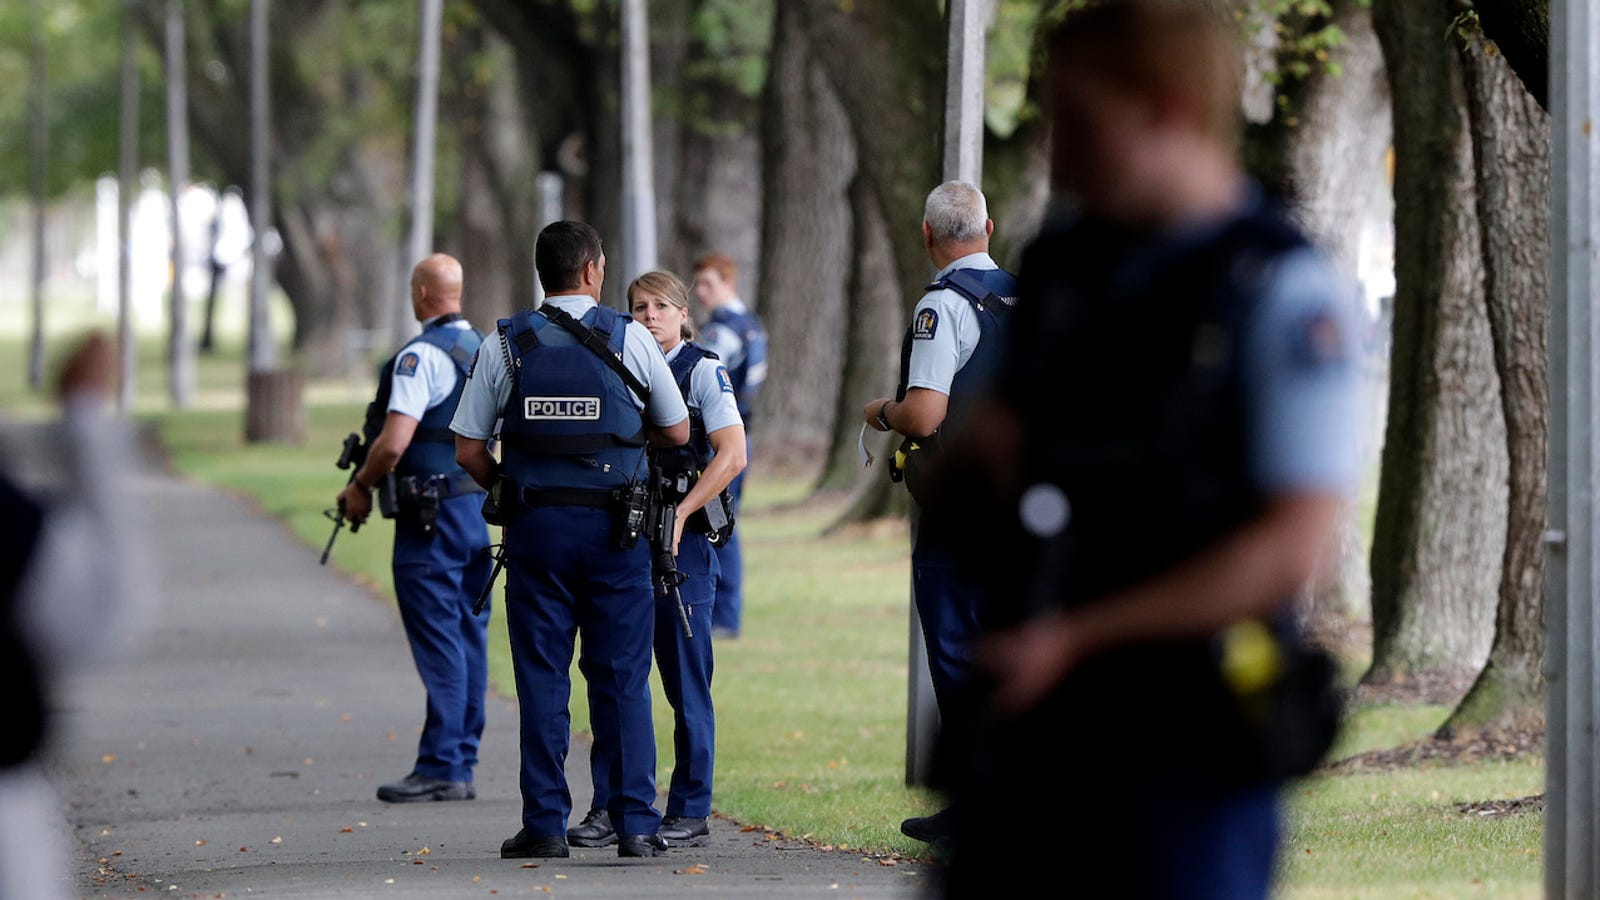 Christchurch Attack: 50 Dead And Dozens Wounded In New Zealand Terror Attacks